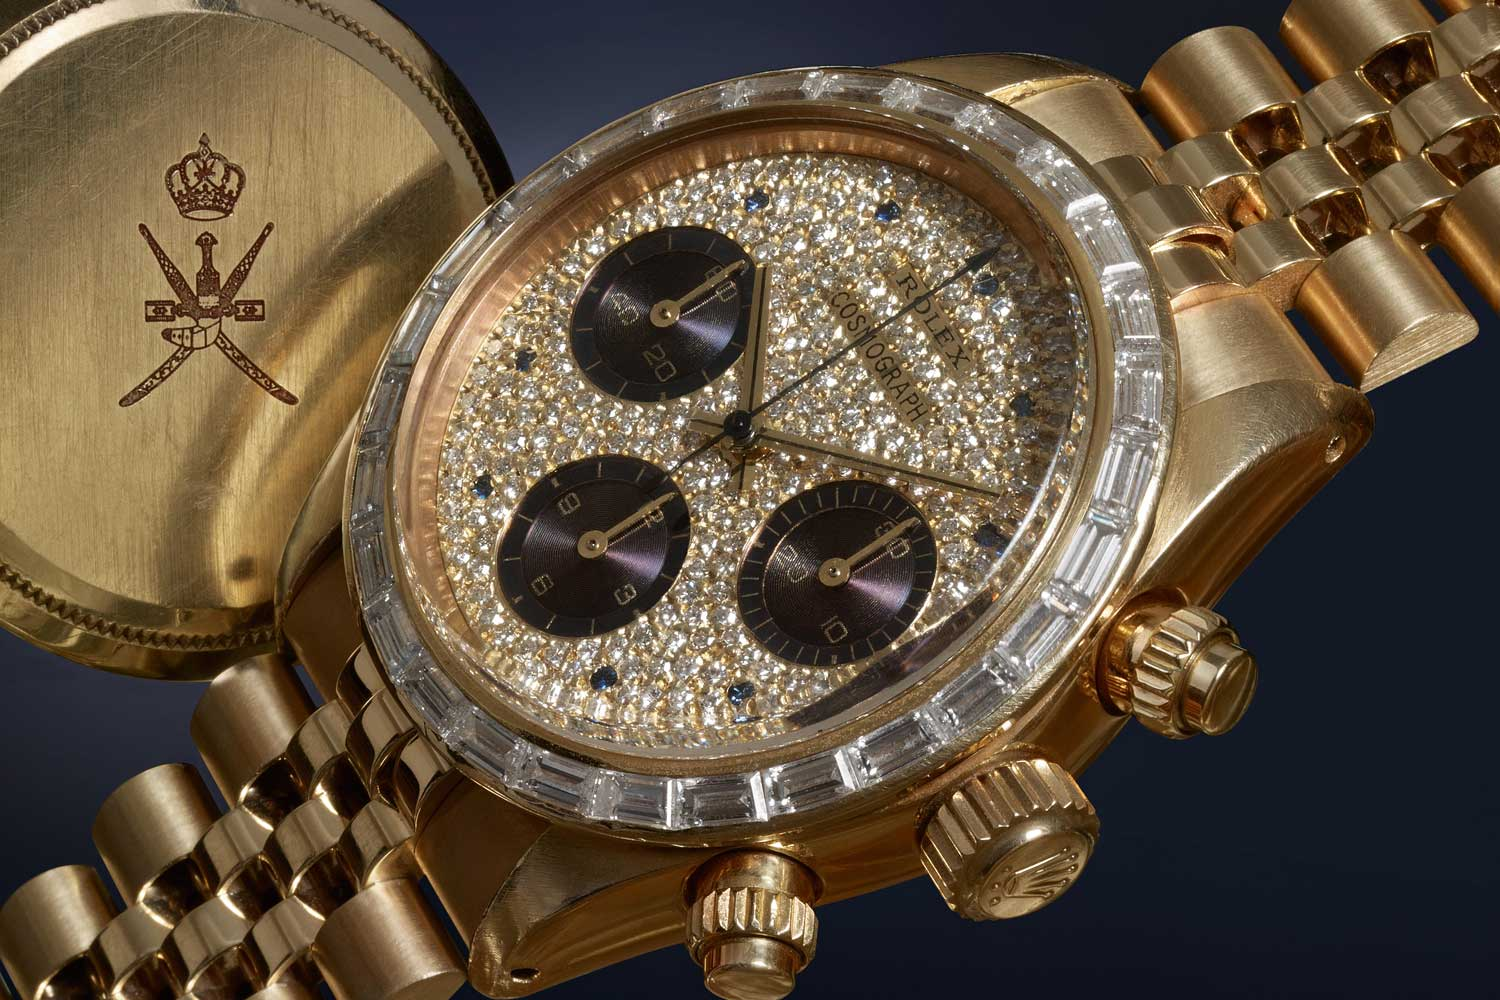 Ref. 6270 fitted with baguette-cut diamonds on the bezel and a fully paved dial with sapphire hour markers and purple counters